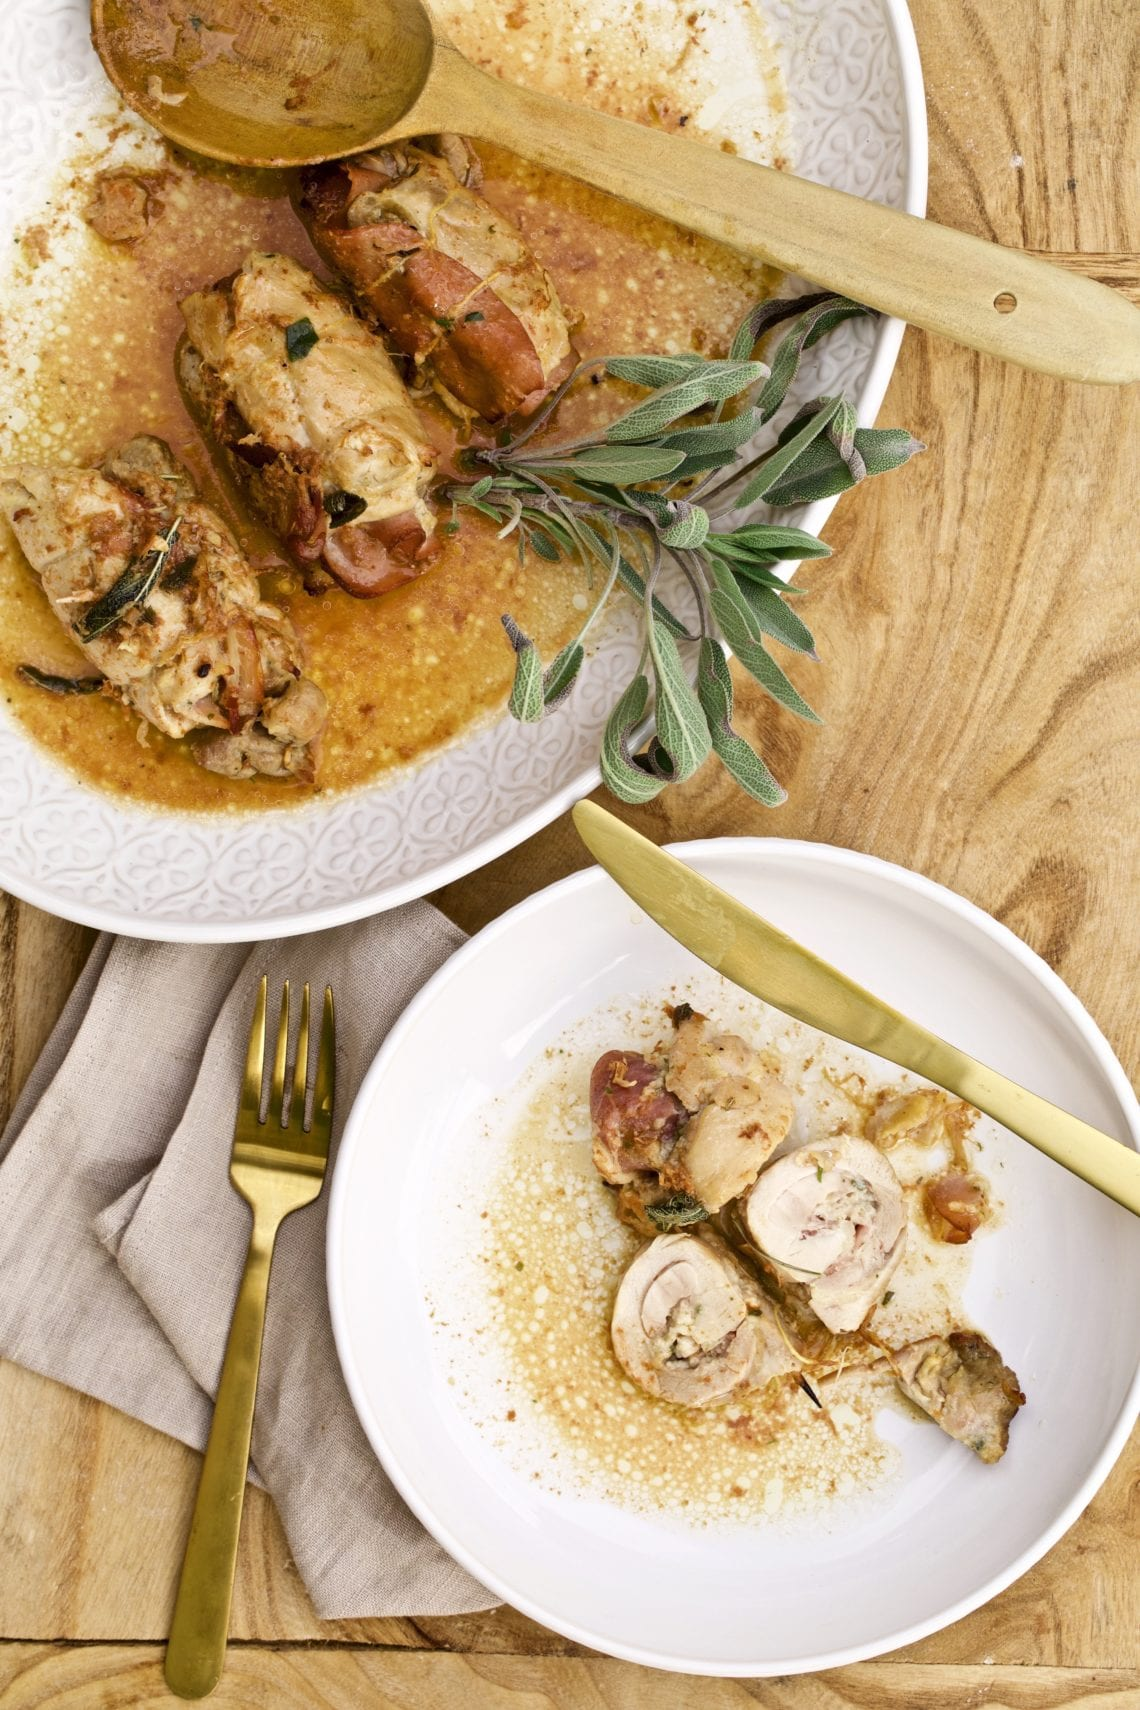 stuffed chicken thighs on a plate